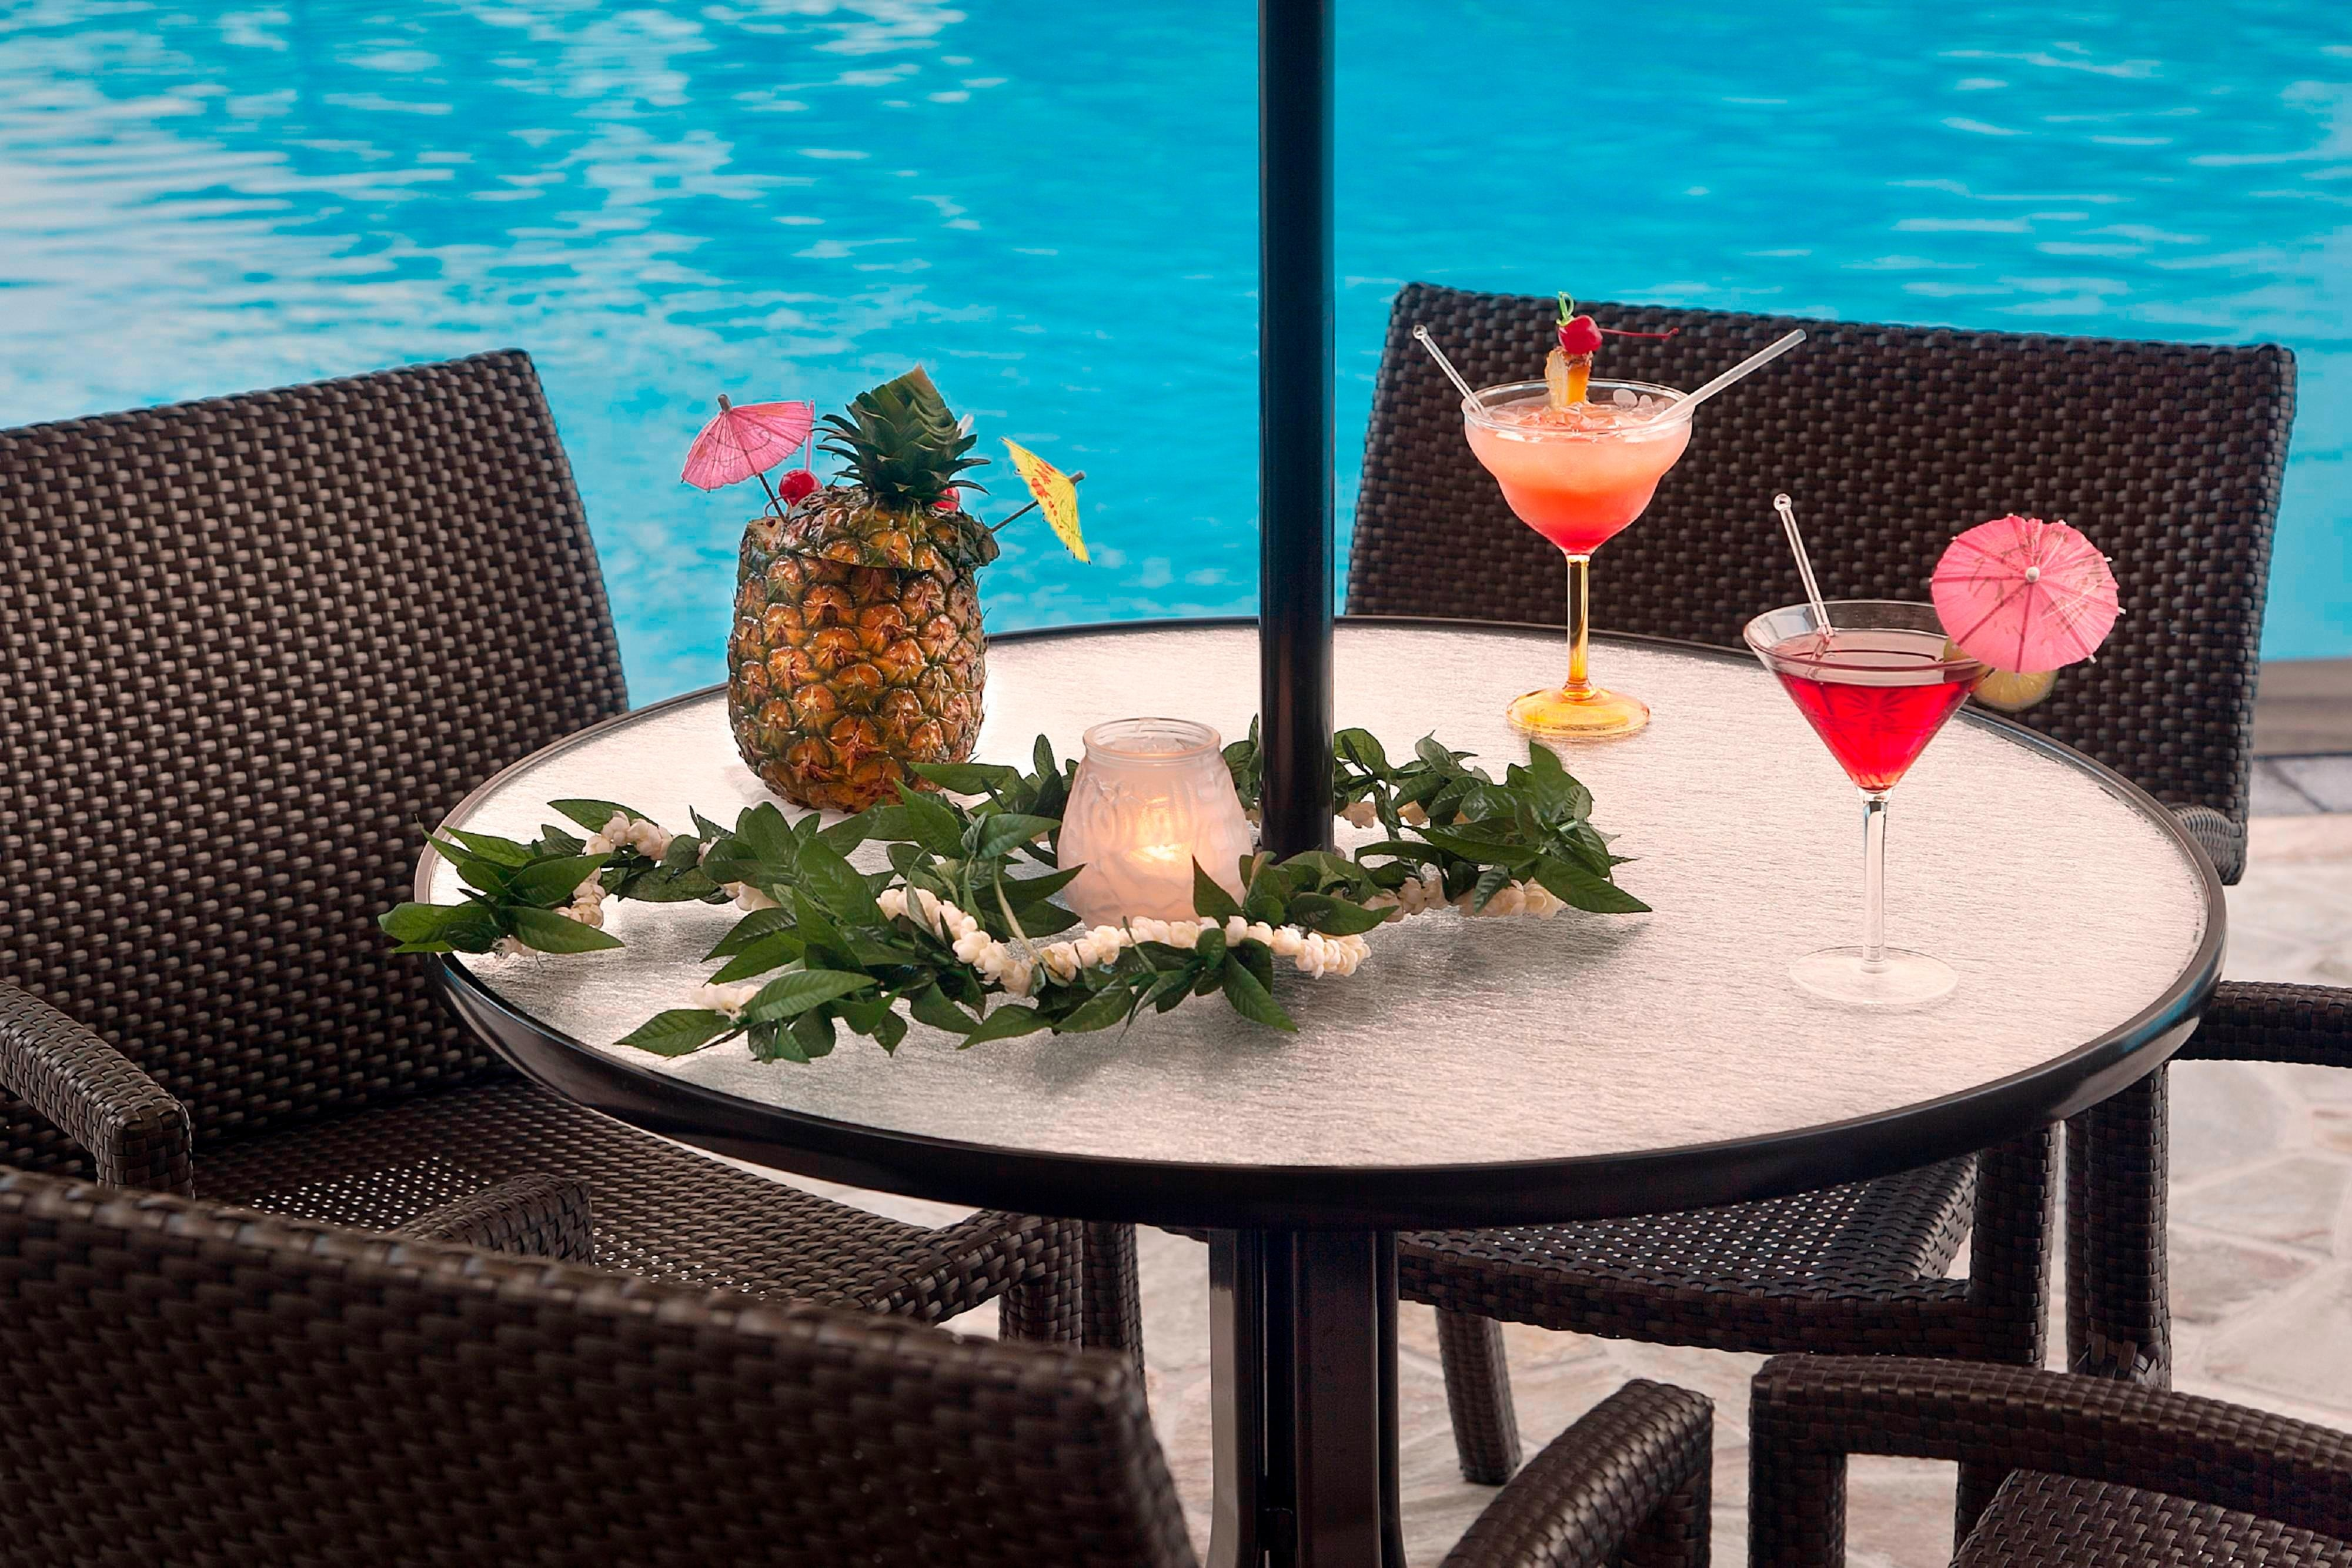 Billfish Poolside Bar & Grille